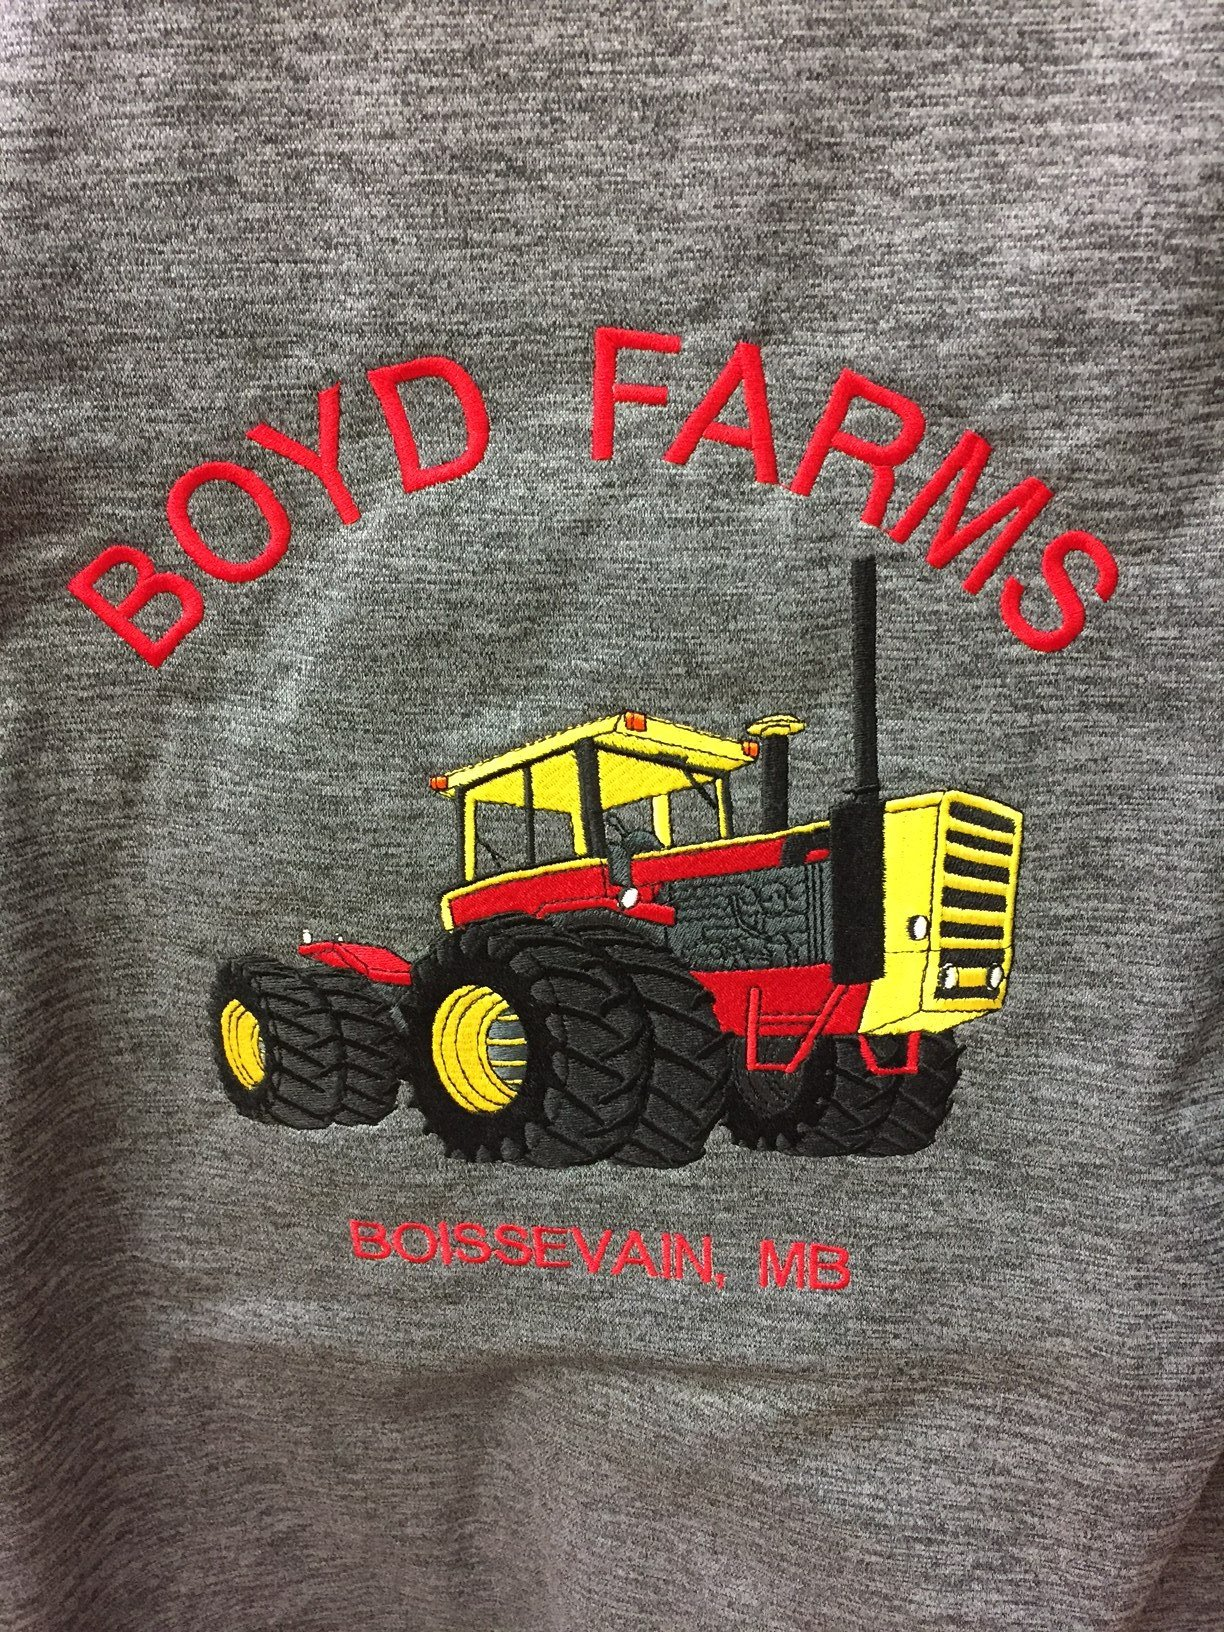 https://0901.nccdn.net/4_2/000/000/038/2d3/Boyd-Farms-1-1224x1632.jpg